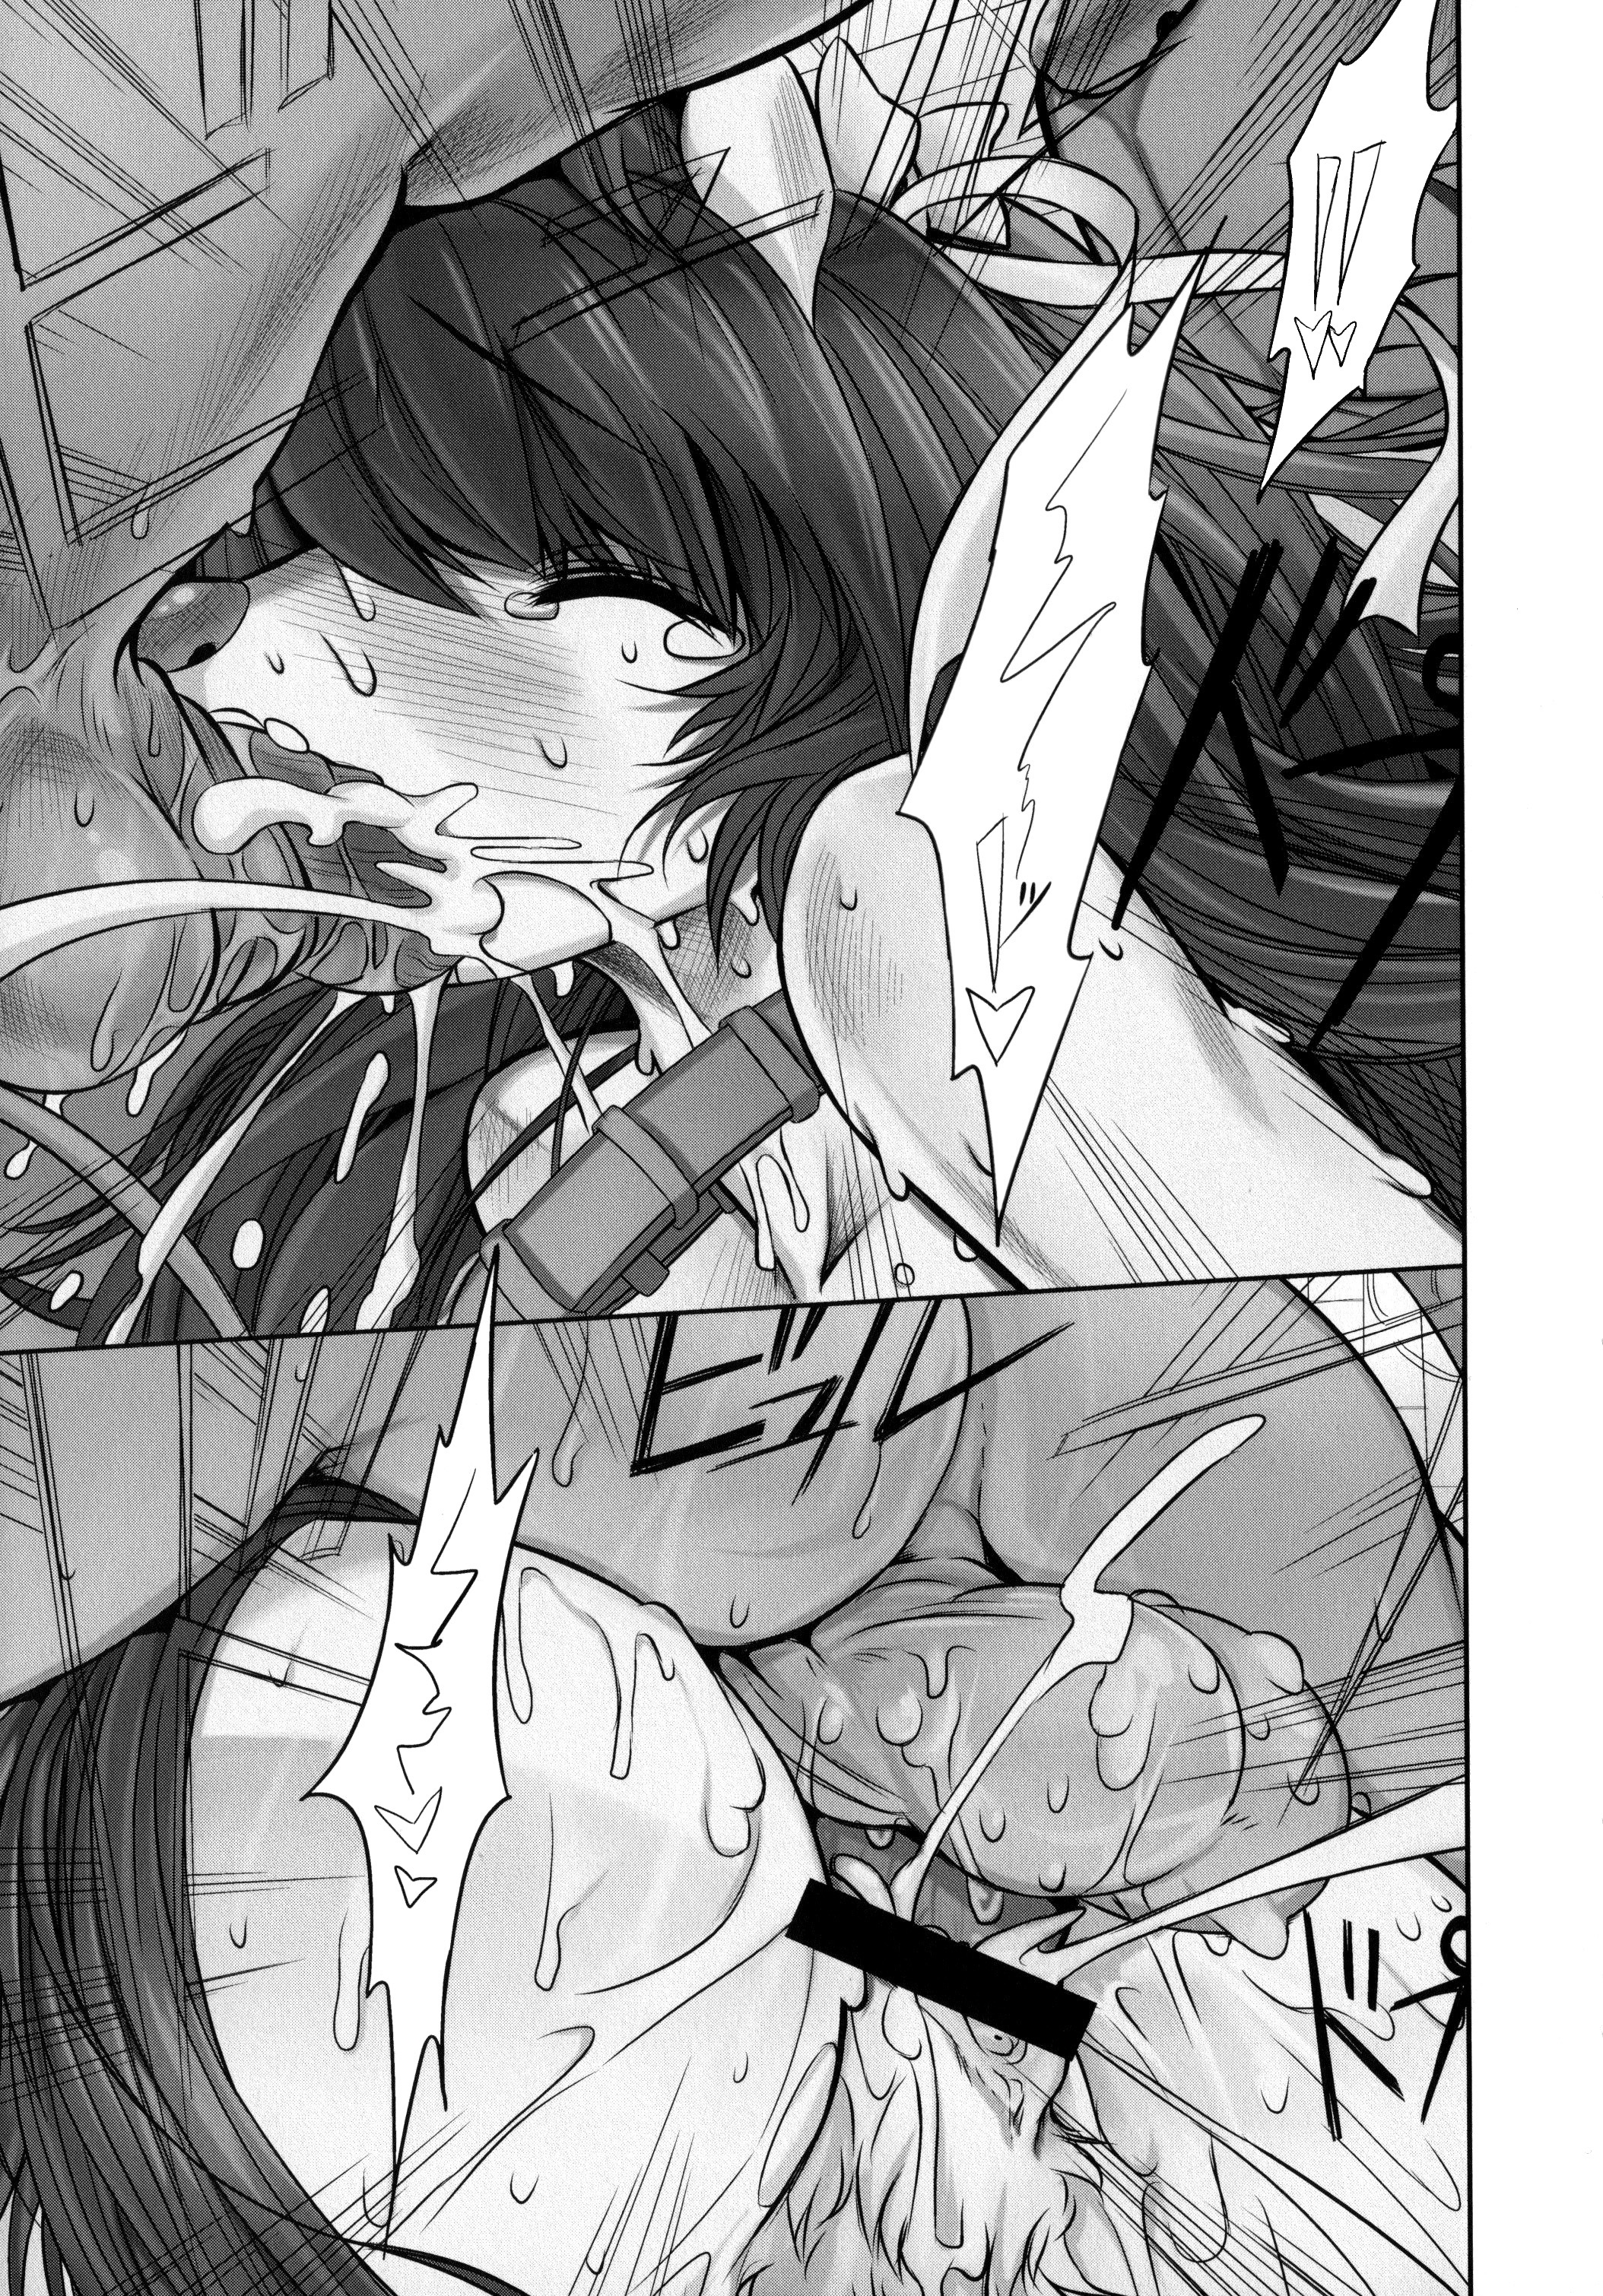 Forced Sex Manga rule 34 - beagle breasts canine canine comic feline female